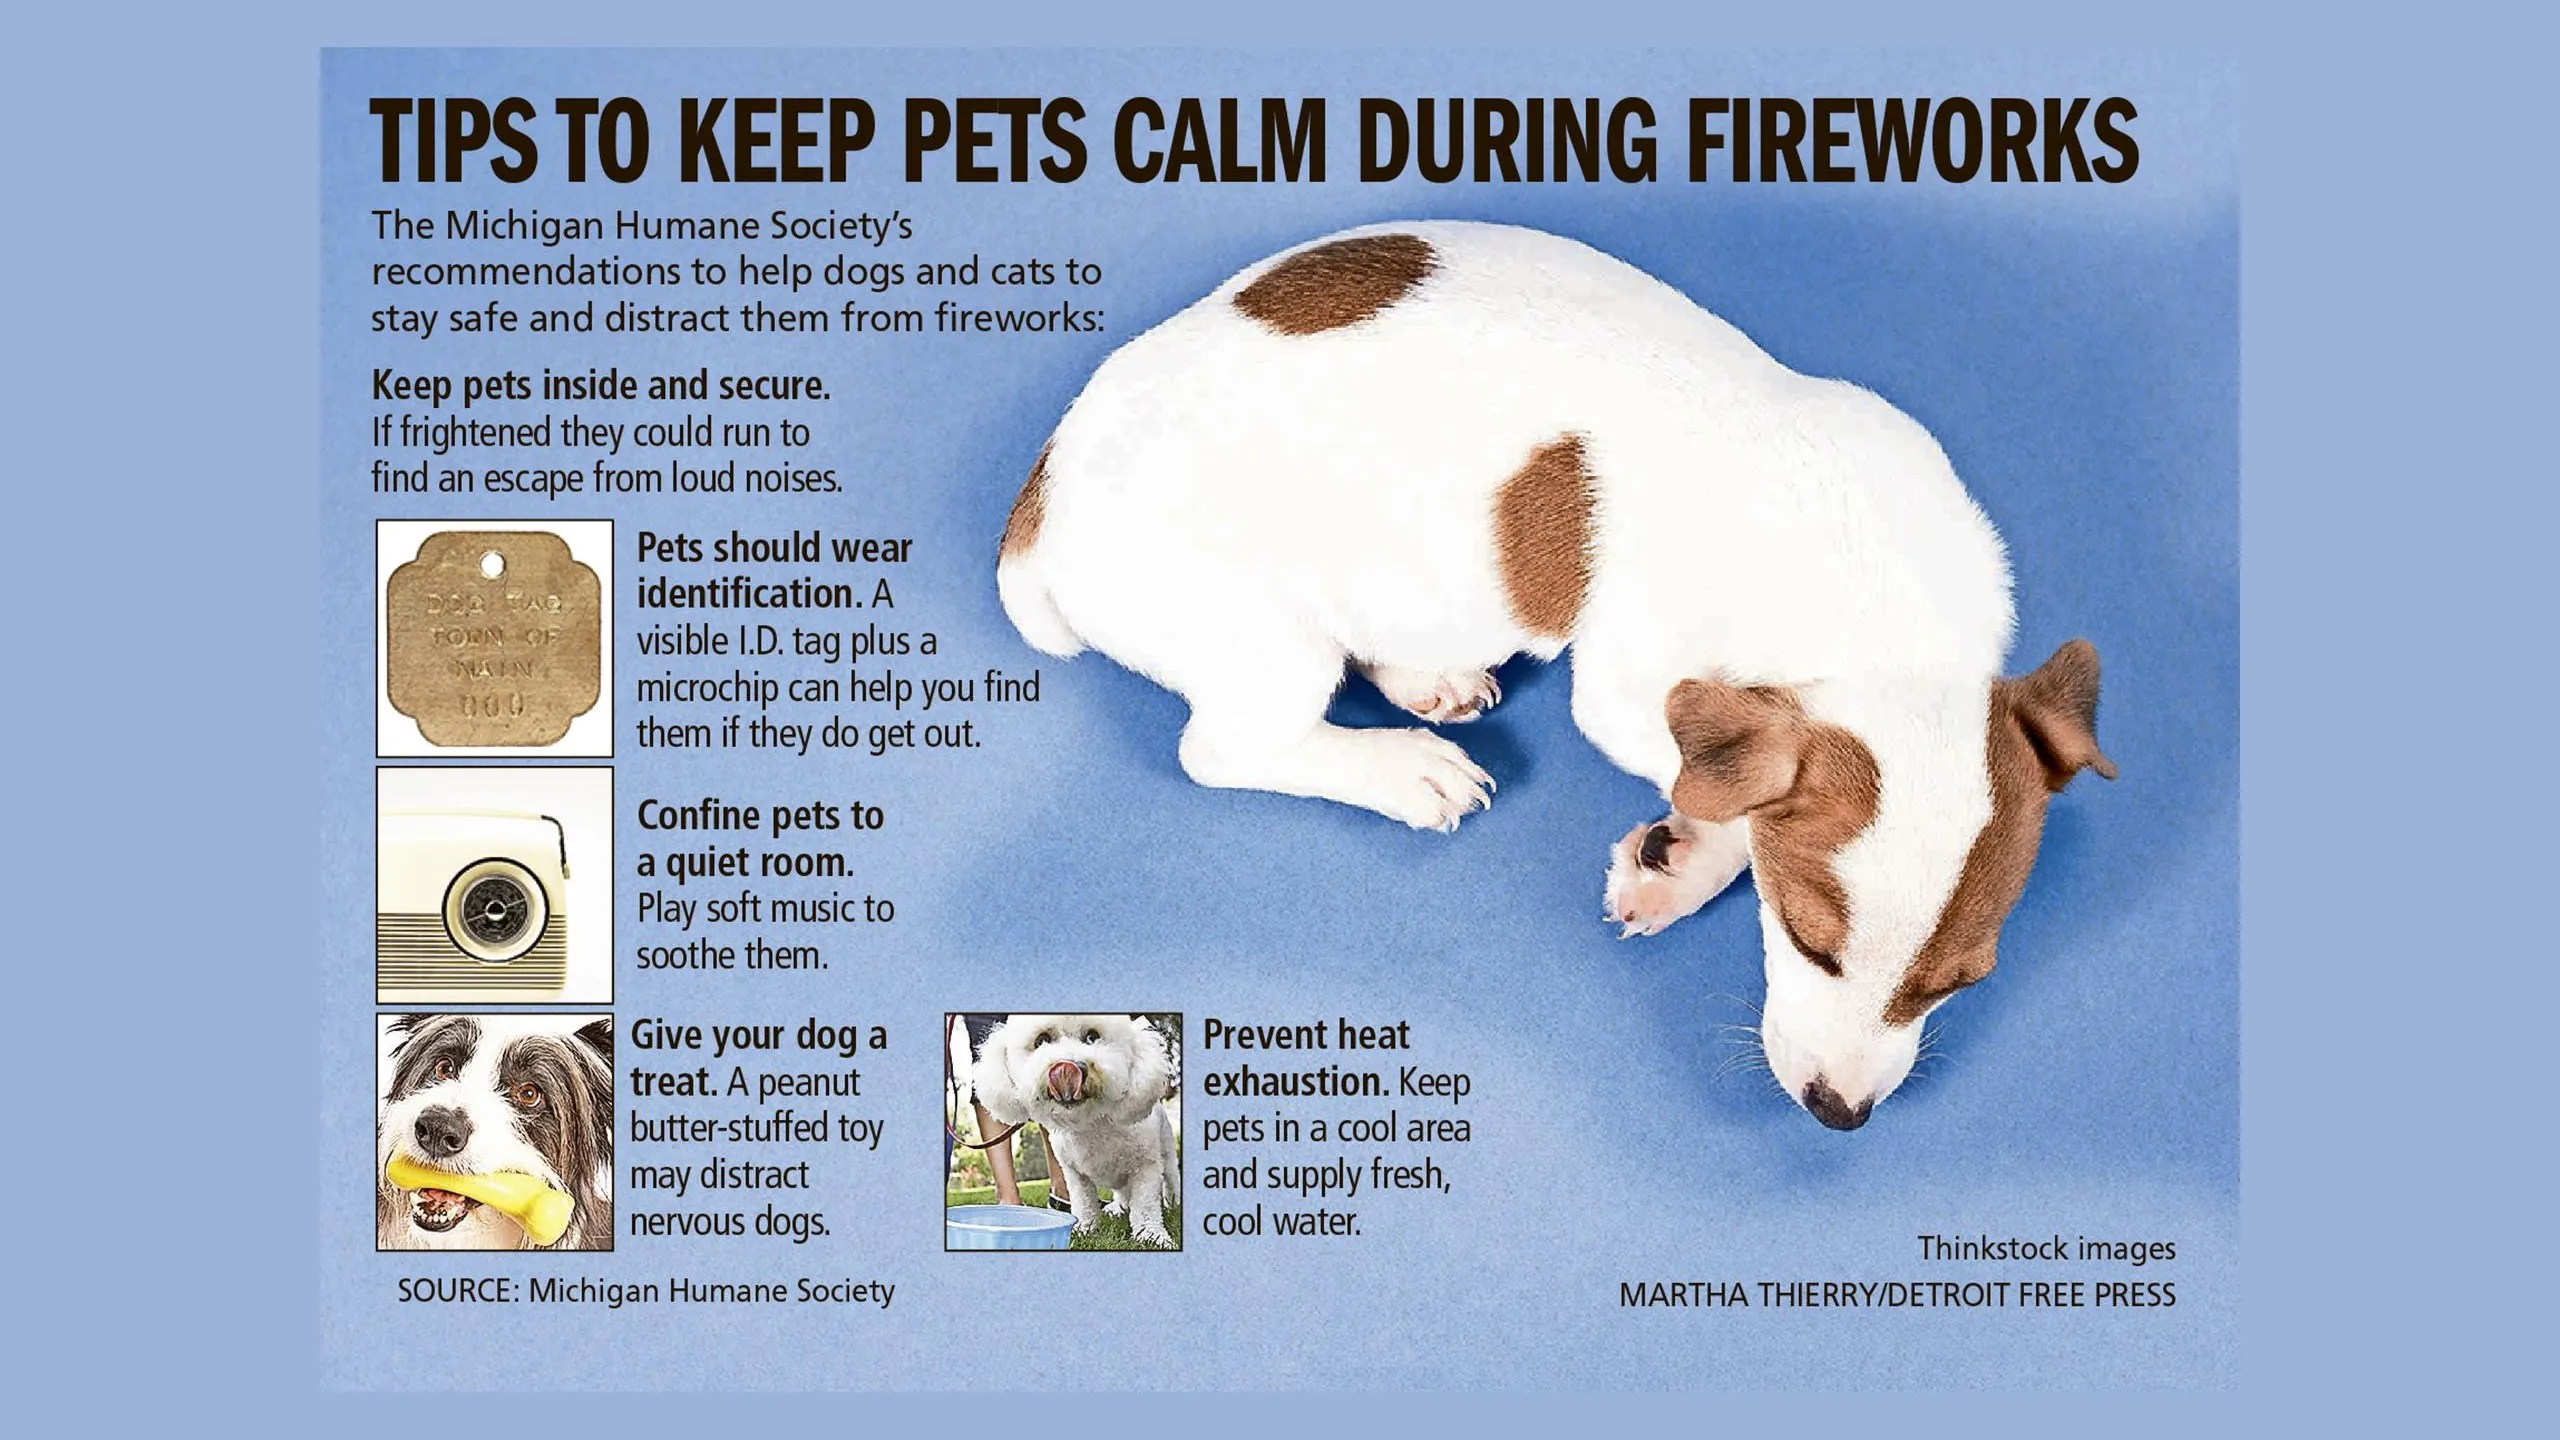 Comfortable Dogs Spotify Ing Music Let Your Dog Freak Out Over Fireworks Ing Music Dogs During Thunderstorms bark post Calming Music For Dogs